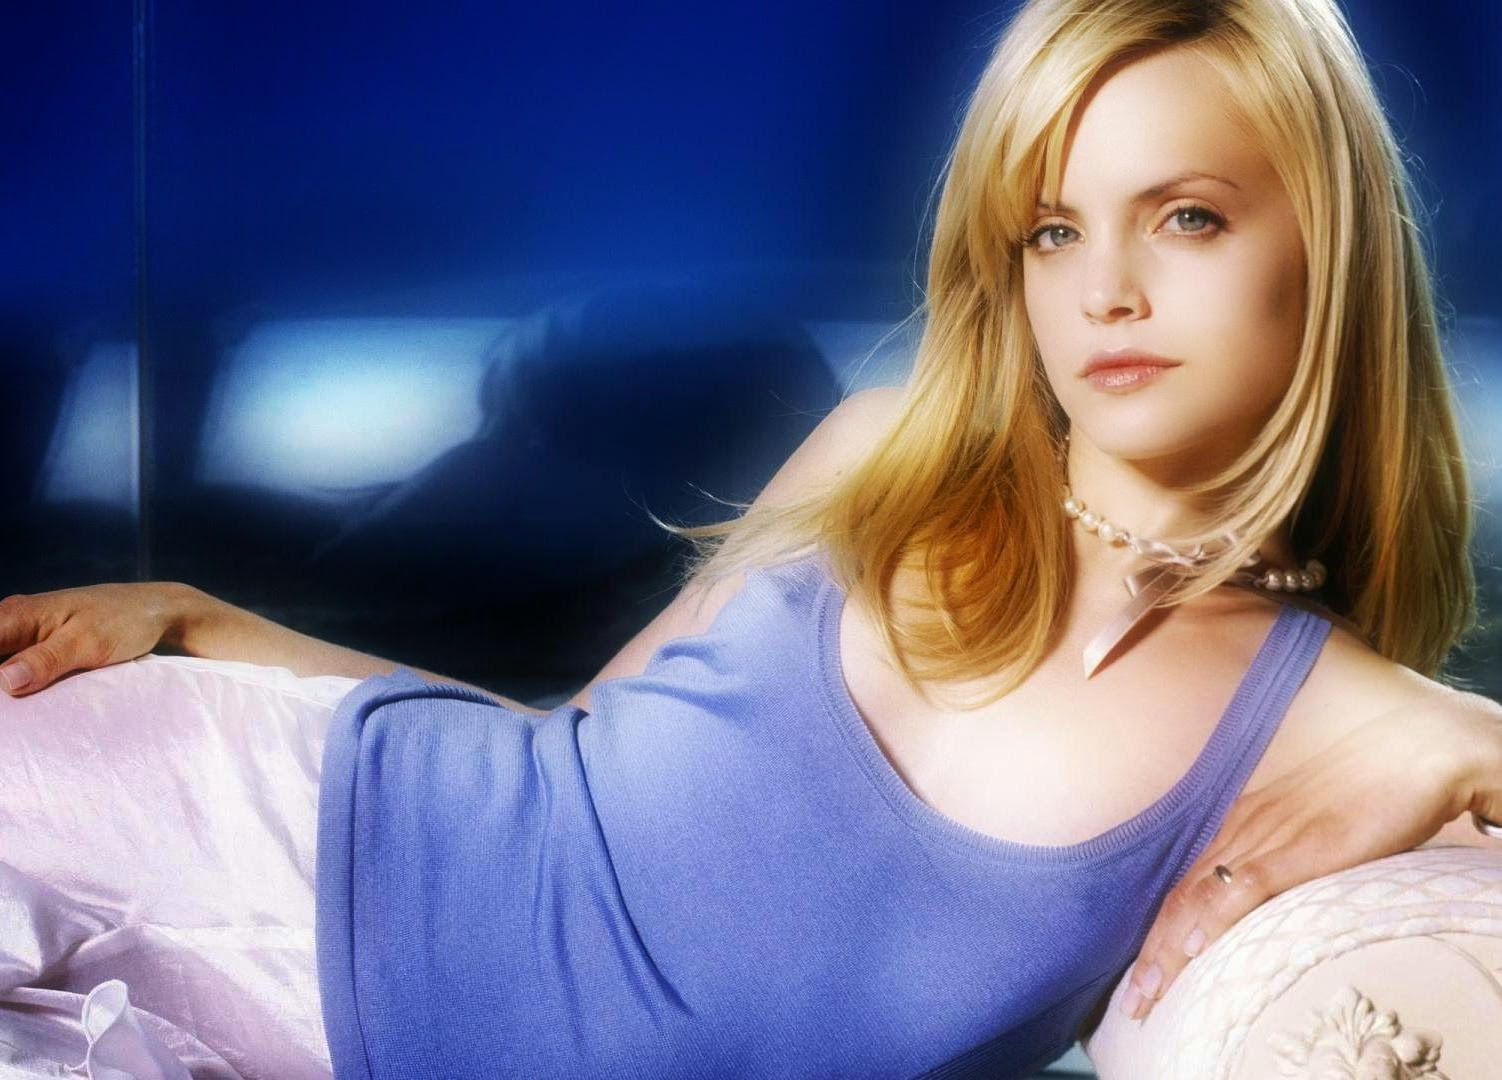 Mena Suvari Wallpapers Free Download